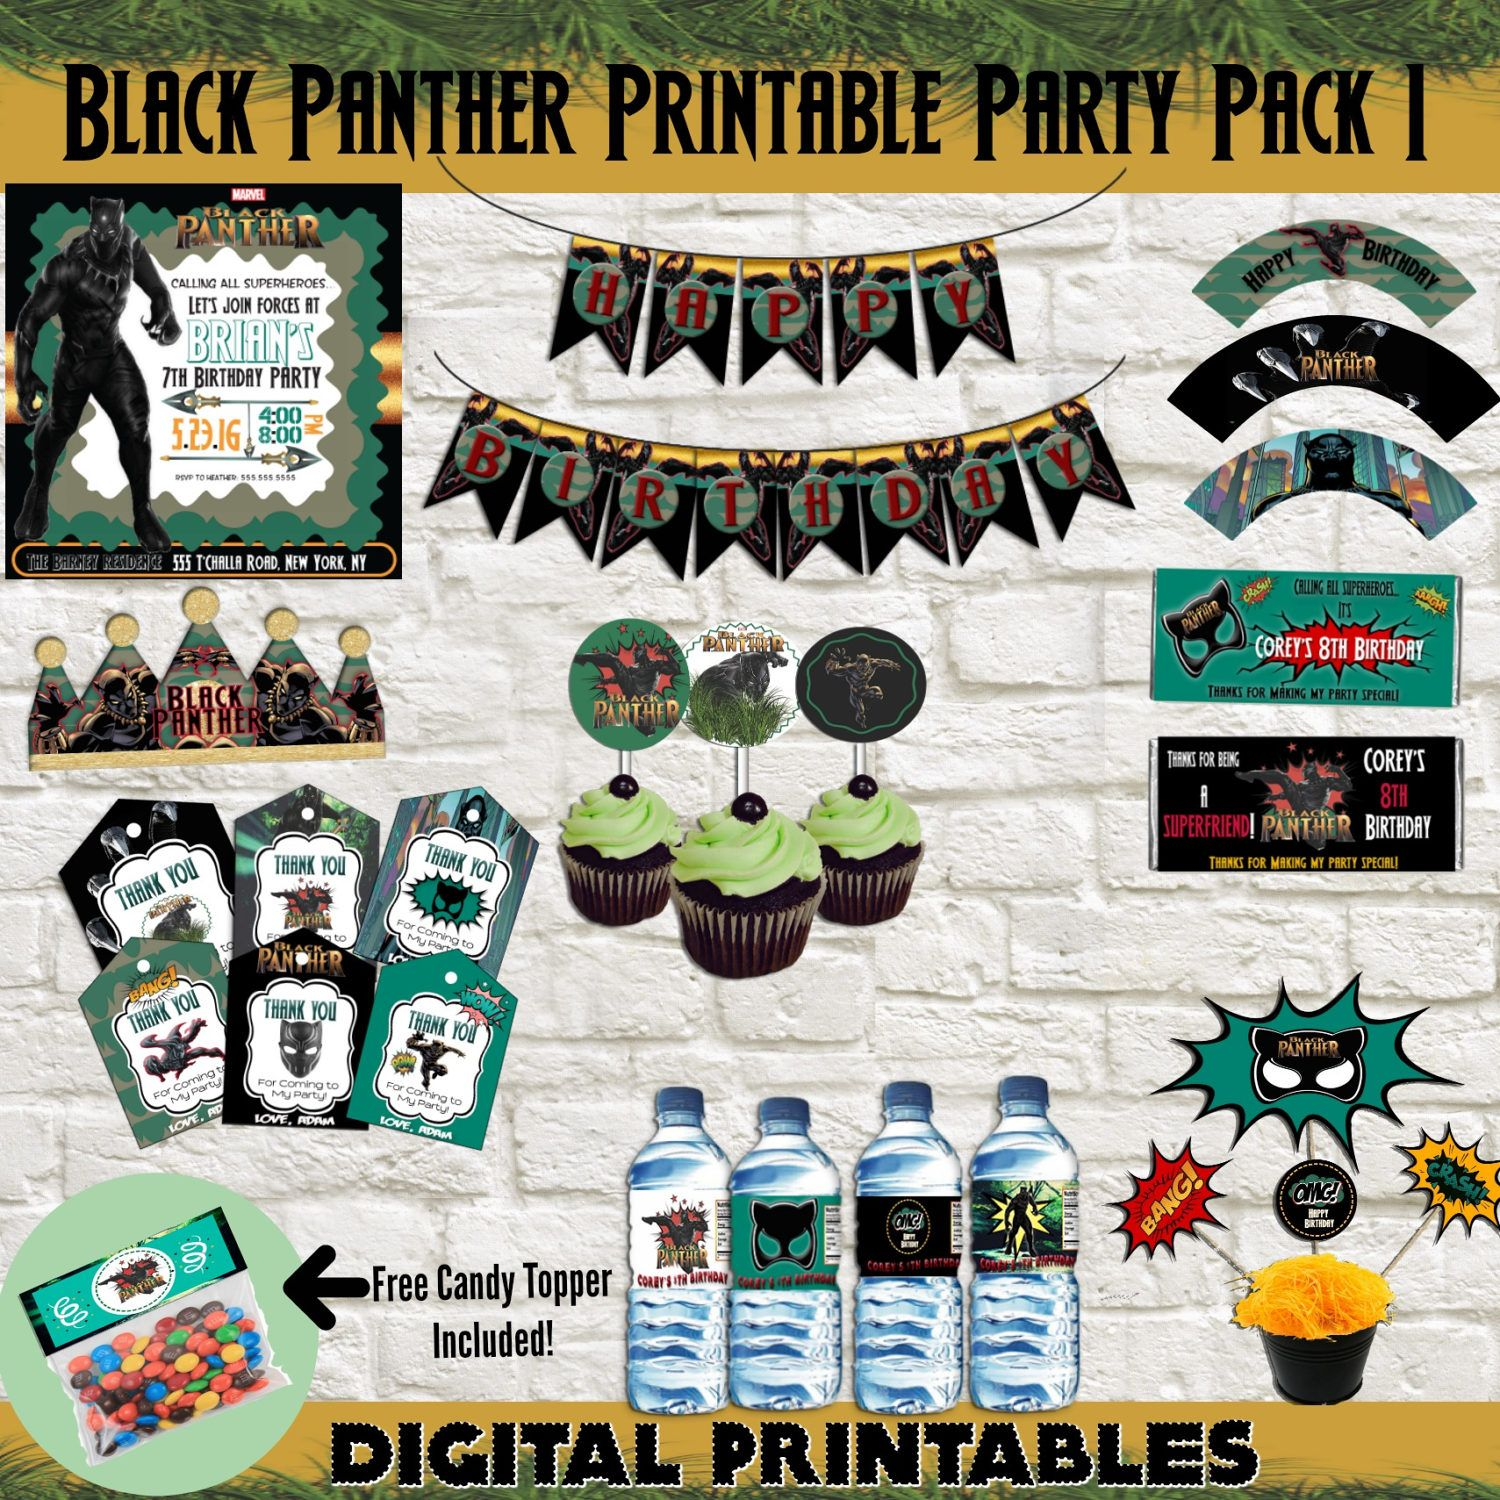 Black panther birthday party printable pack 1 black panther